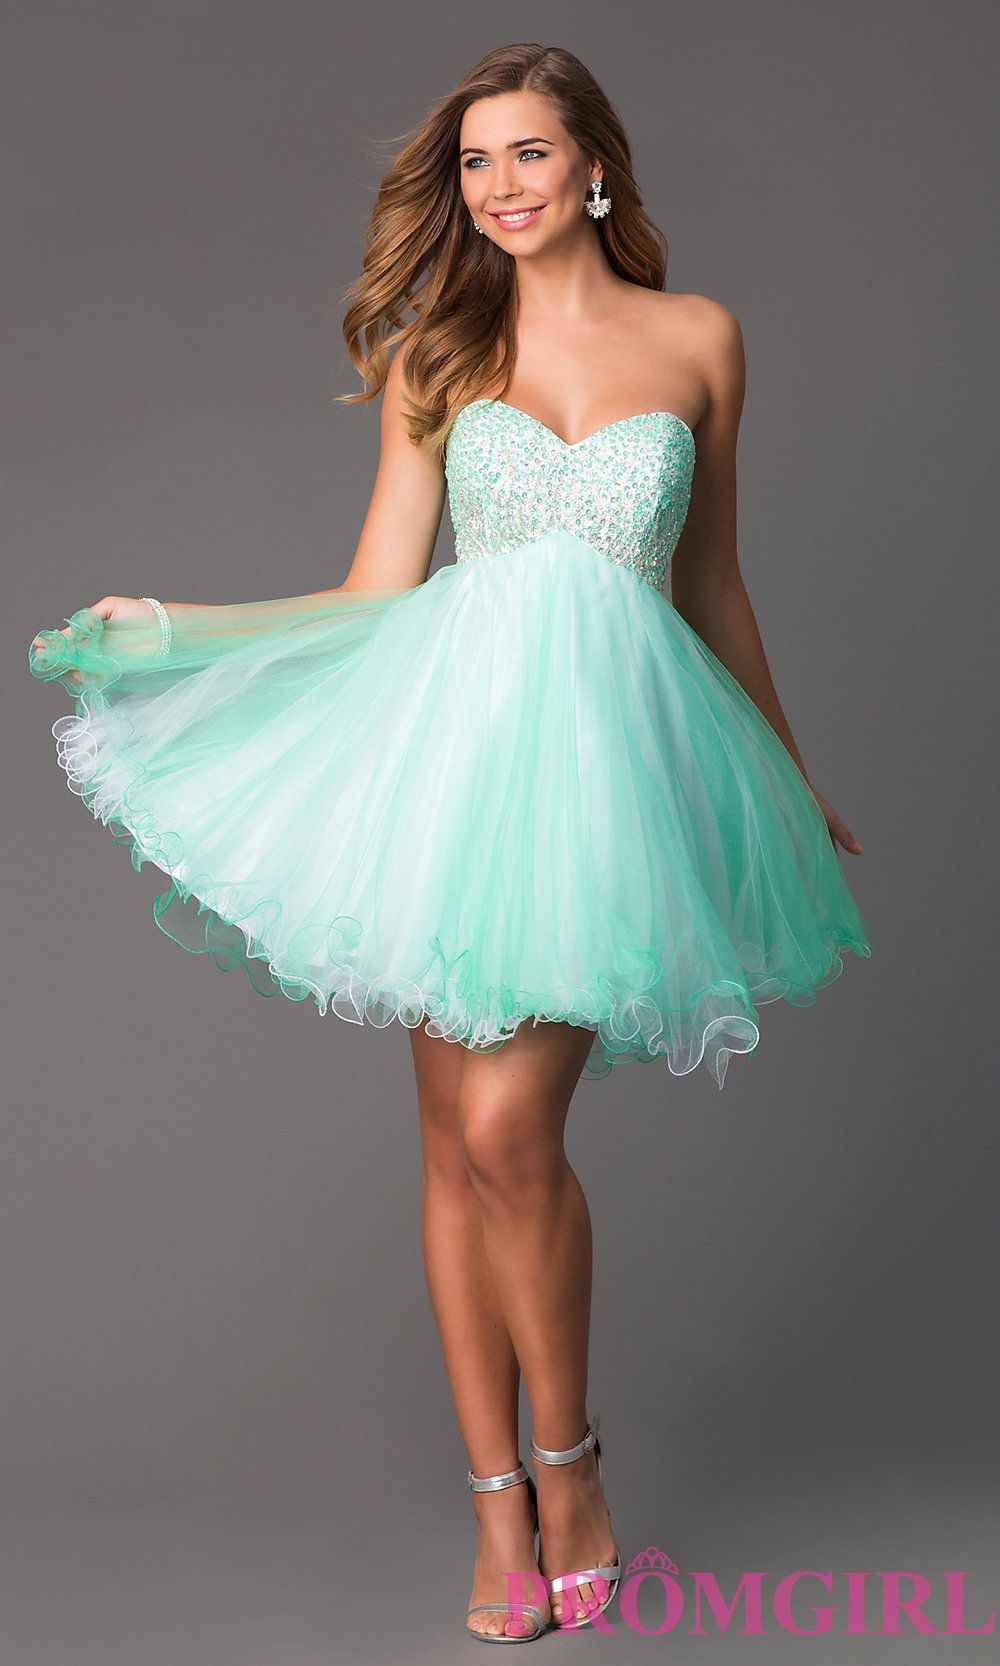 Image from http://img1.promgirl.com/_img/PGPRODUCTS/1336764/1000 ...